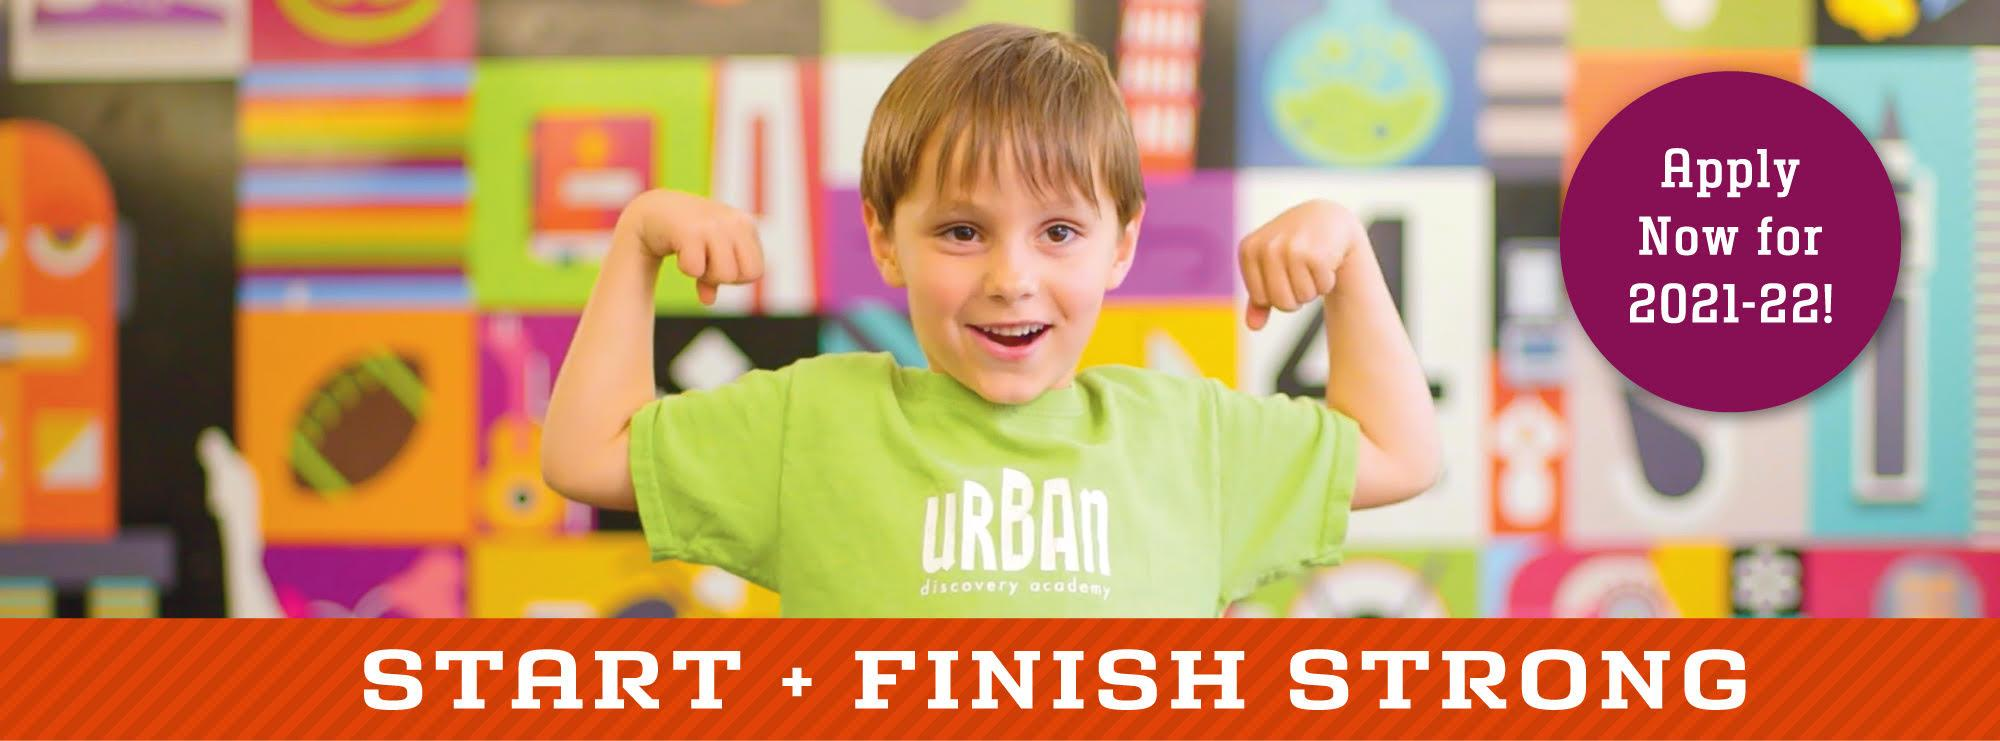 Start + Finish Strong with Urban Discovery Schools